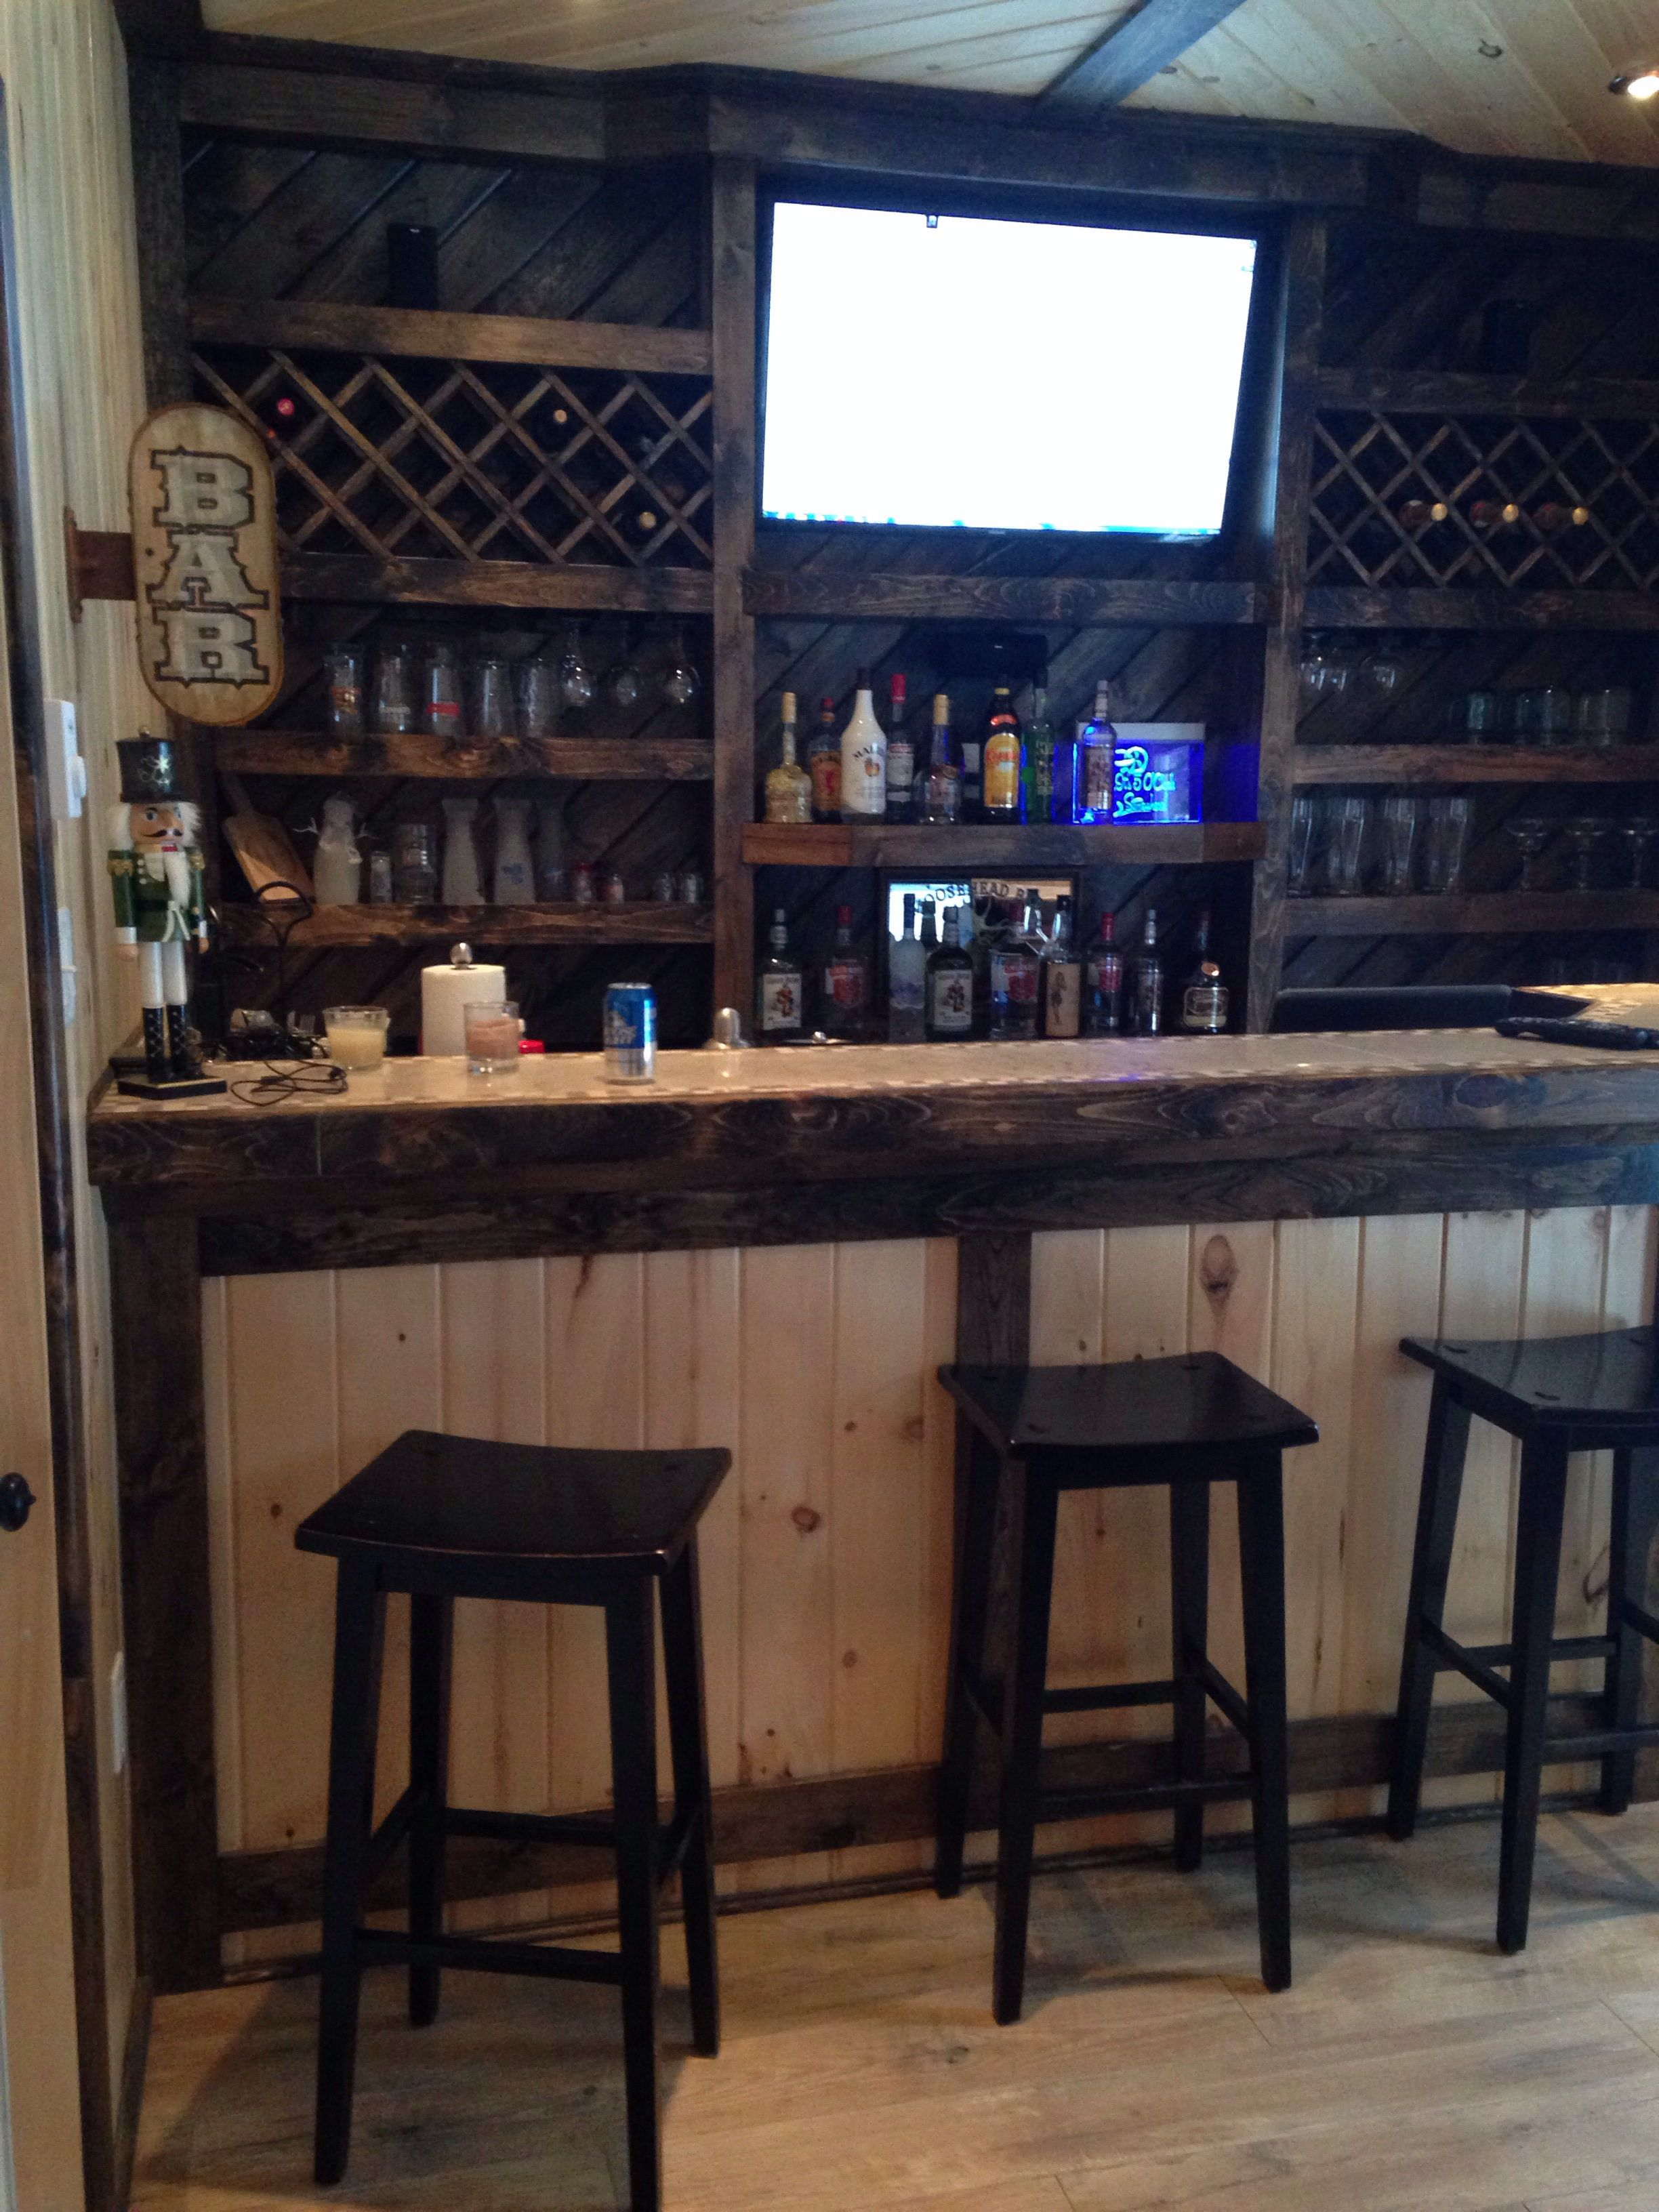 garage bar idea for the hubby's man cave like this but how would